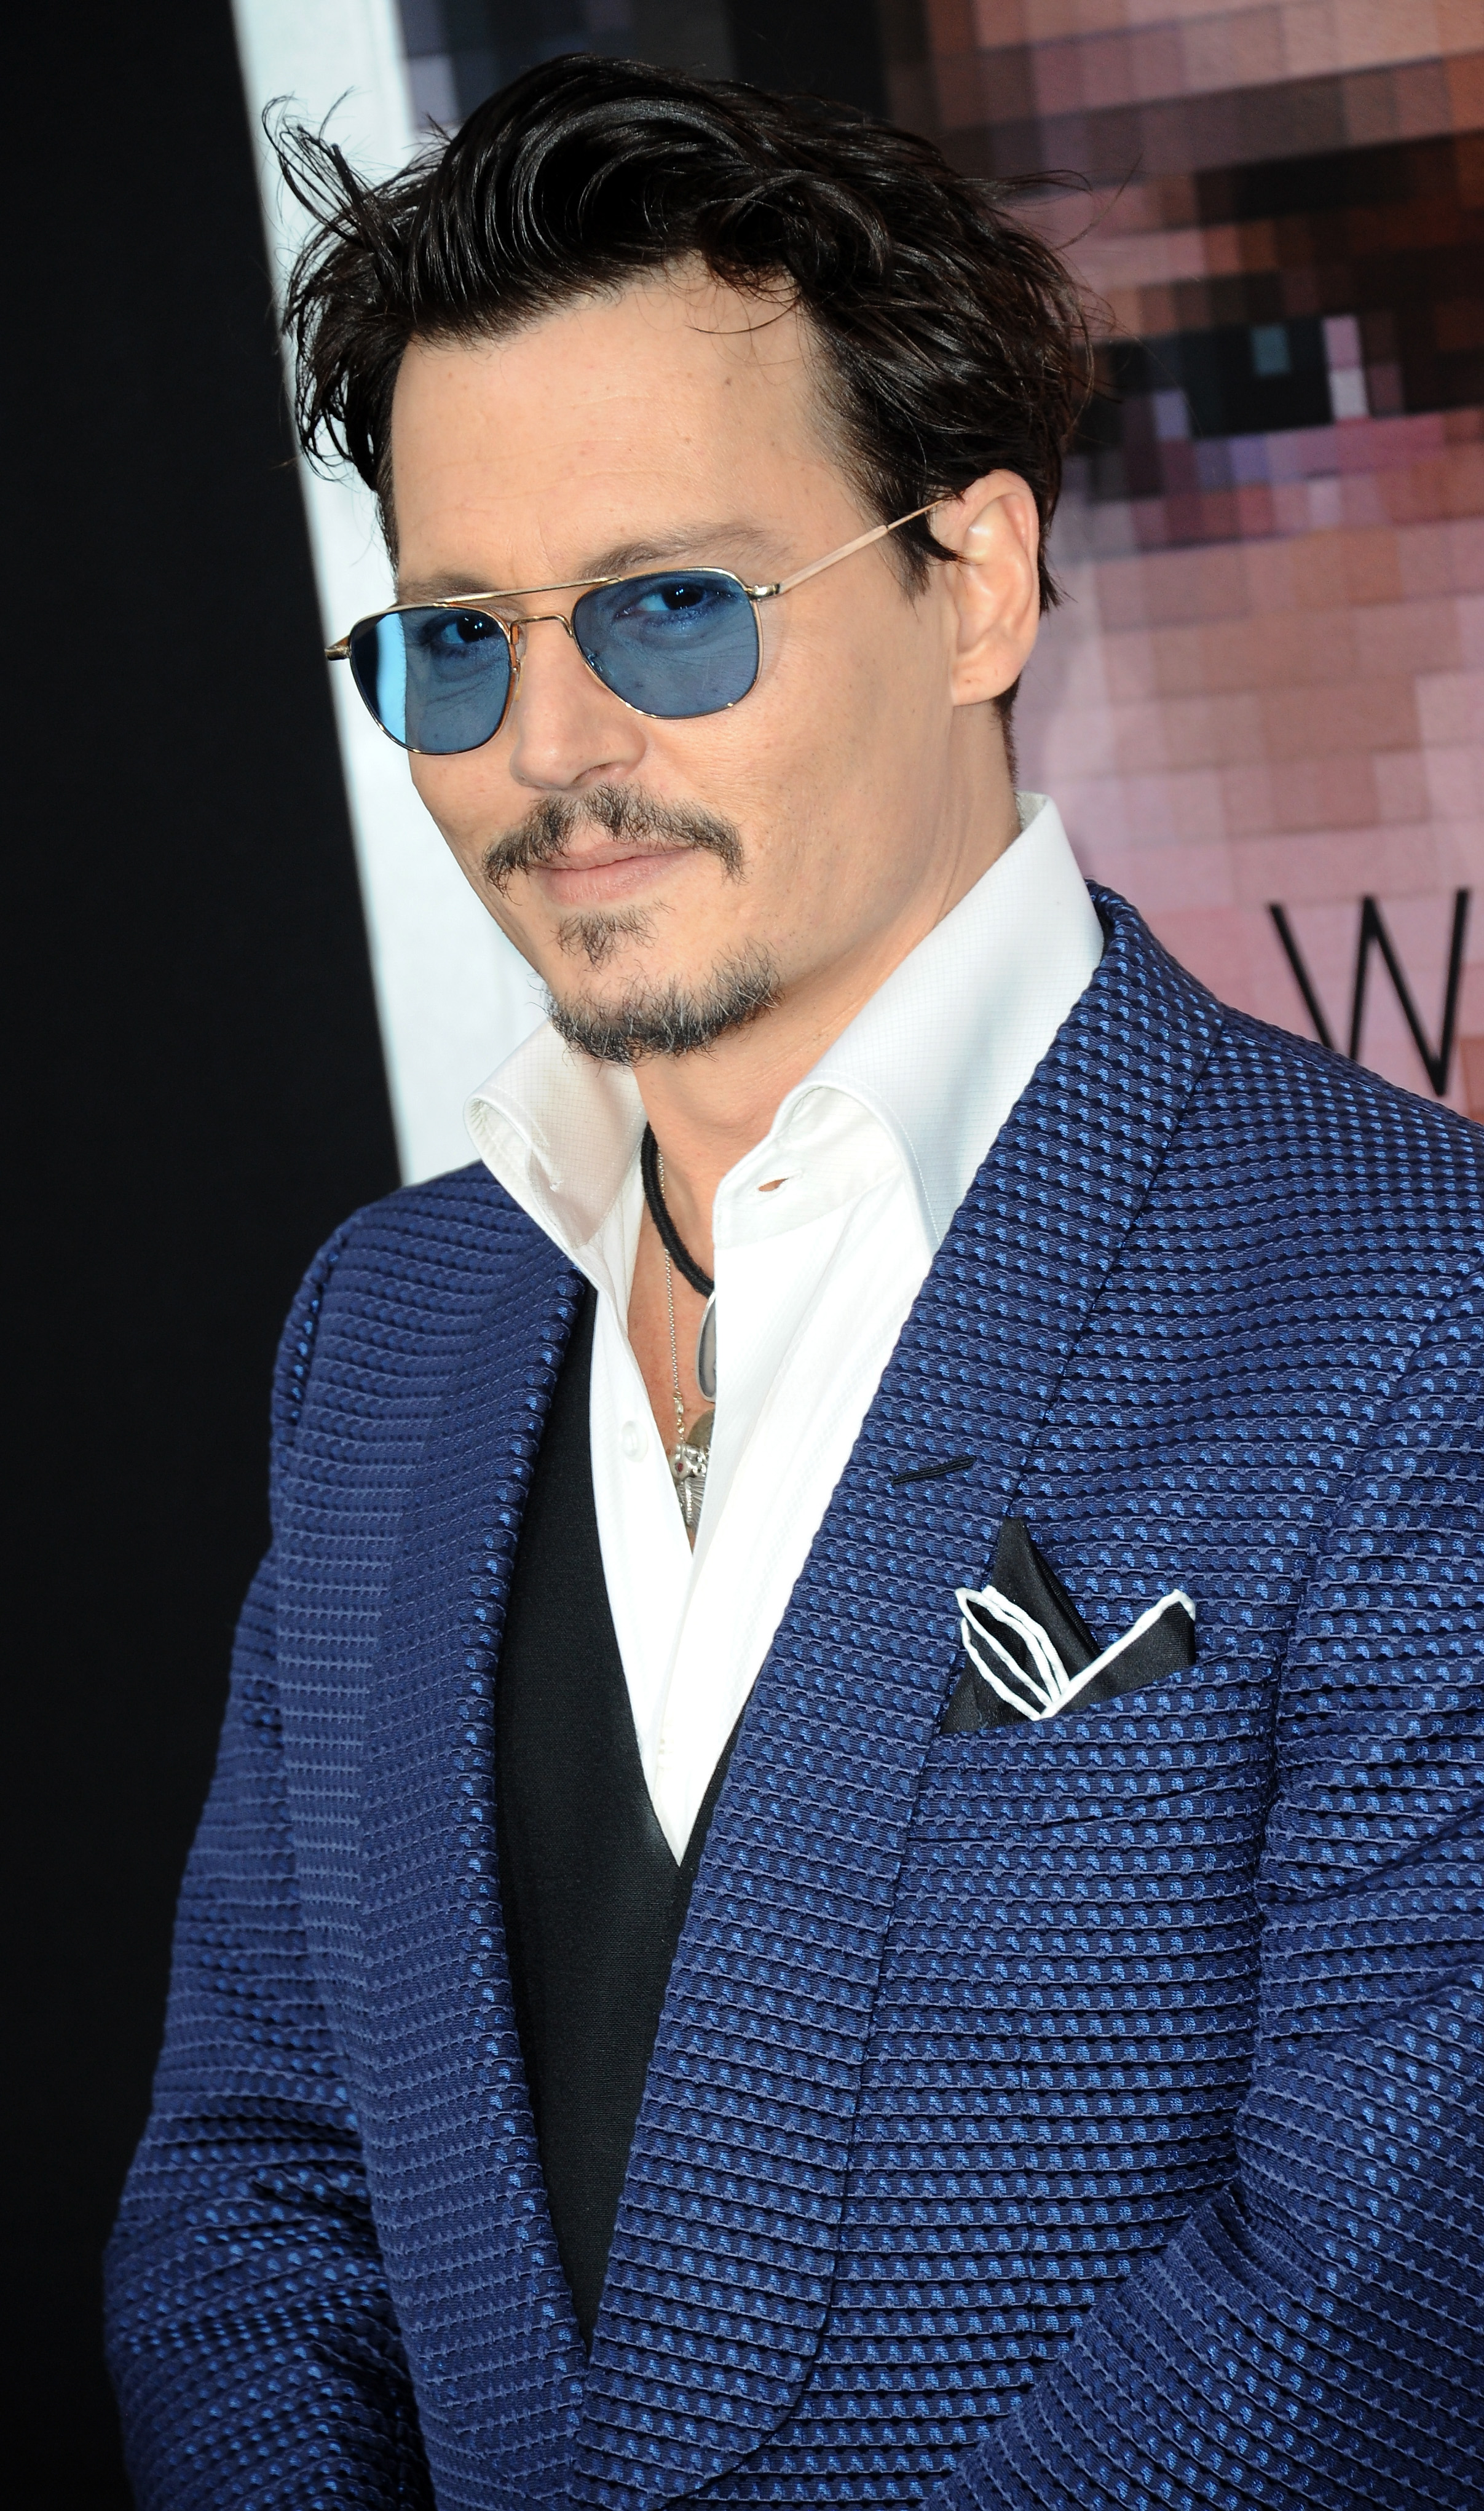 Johnny Depp Finally Said Something About Amber Heard - And